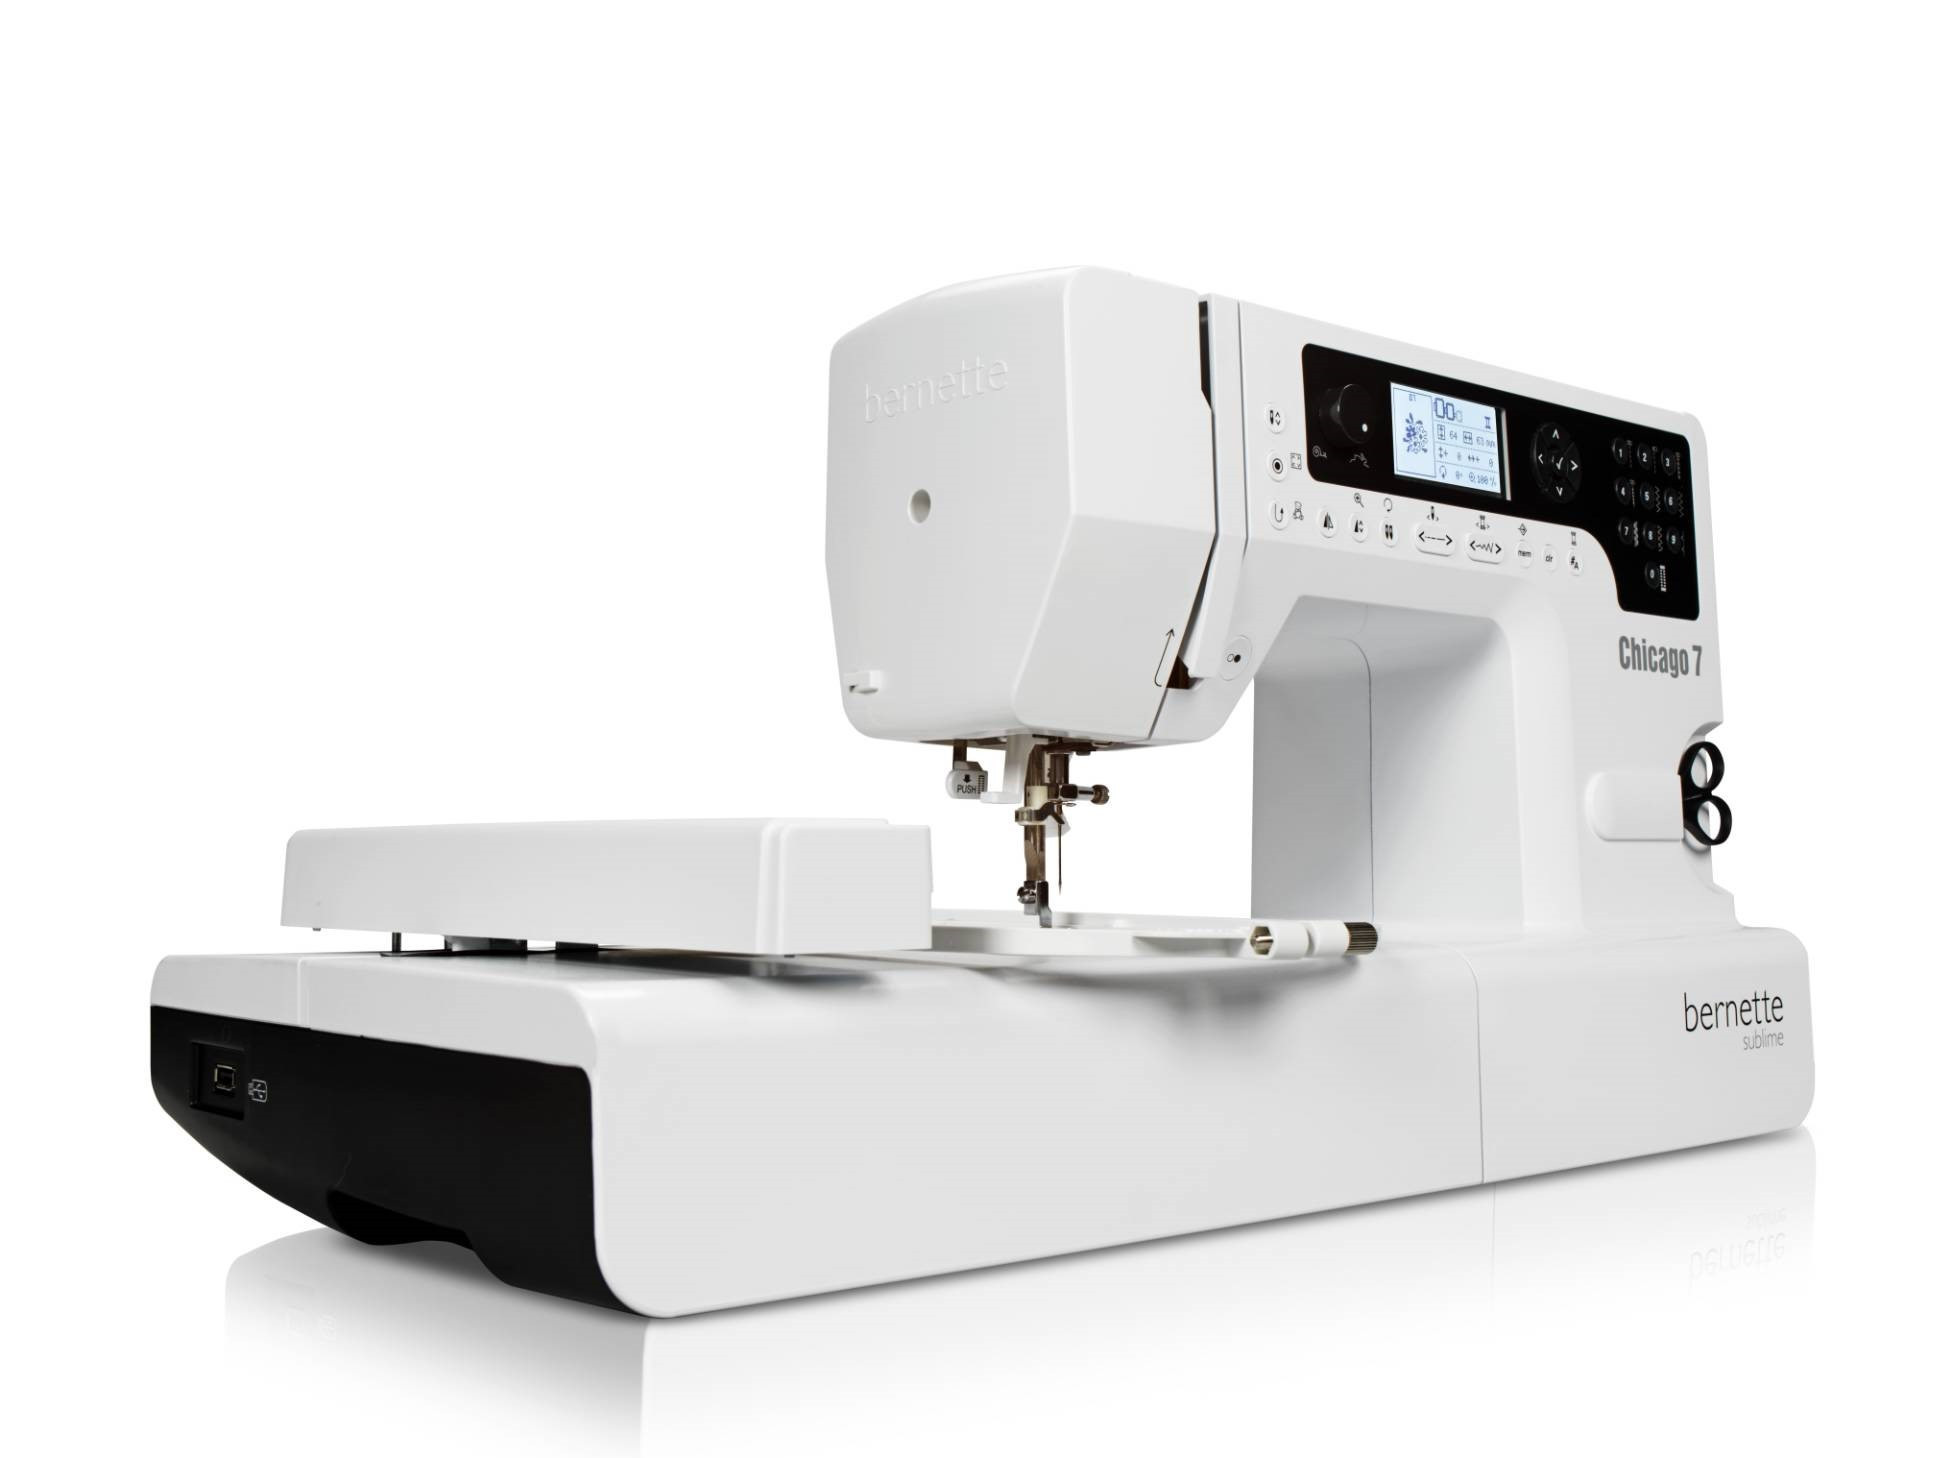 Embroidery Machine Beautiful Bernina Bernette Chicago 7 Sewing and Embroidery Machine Of Innovative 43 Pictures Embroidery Machine